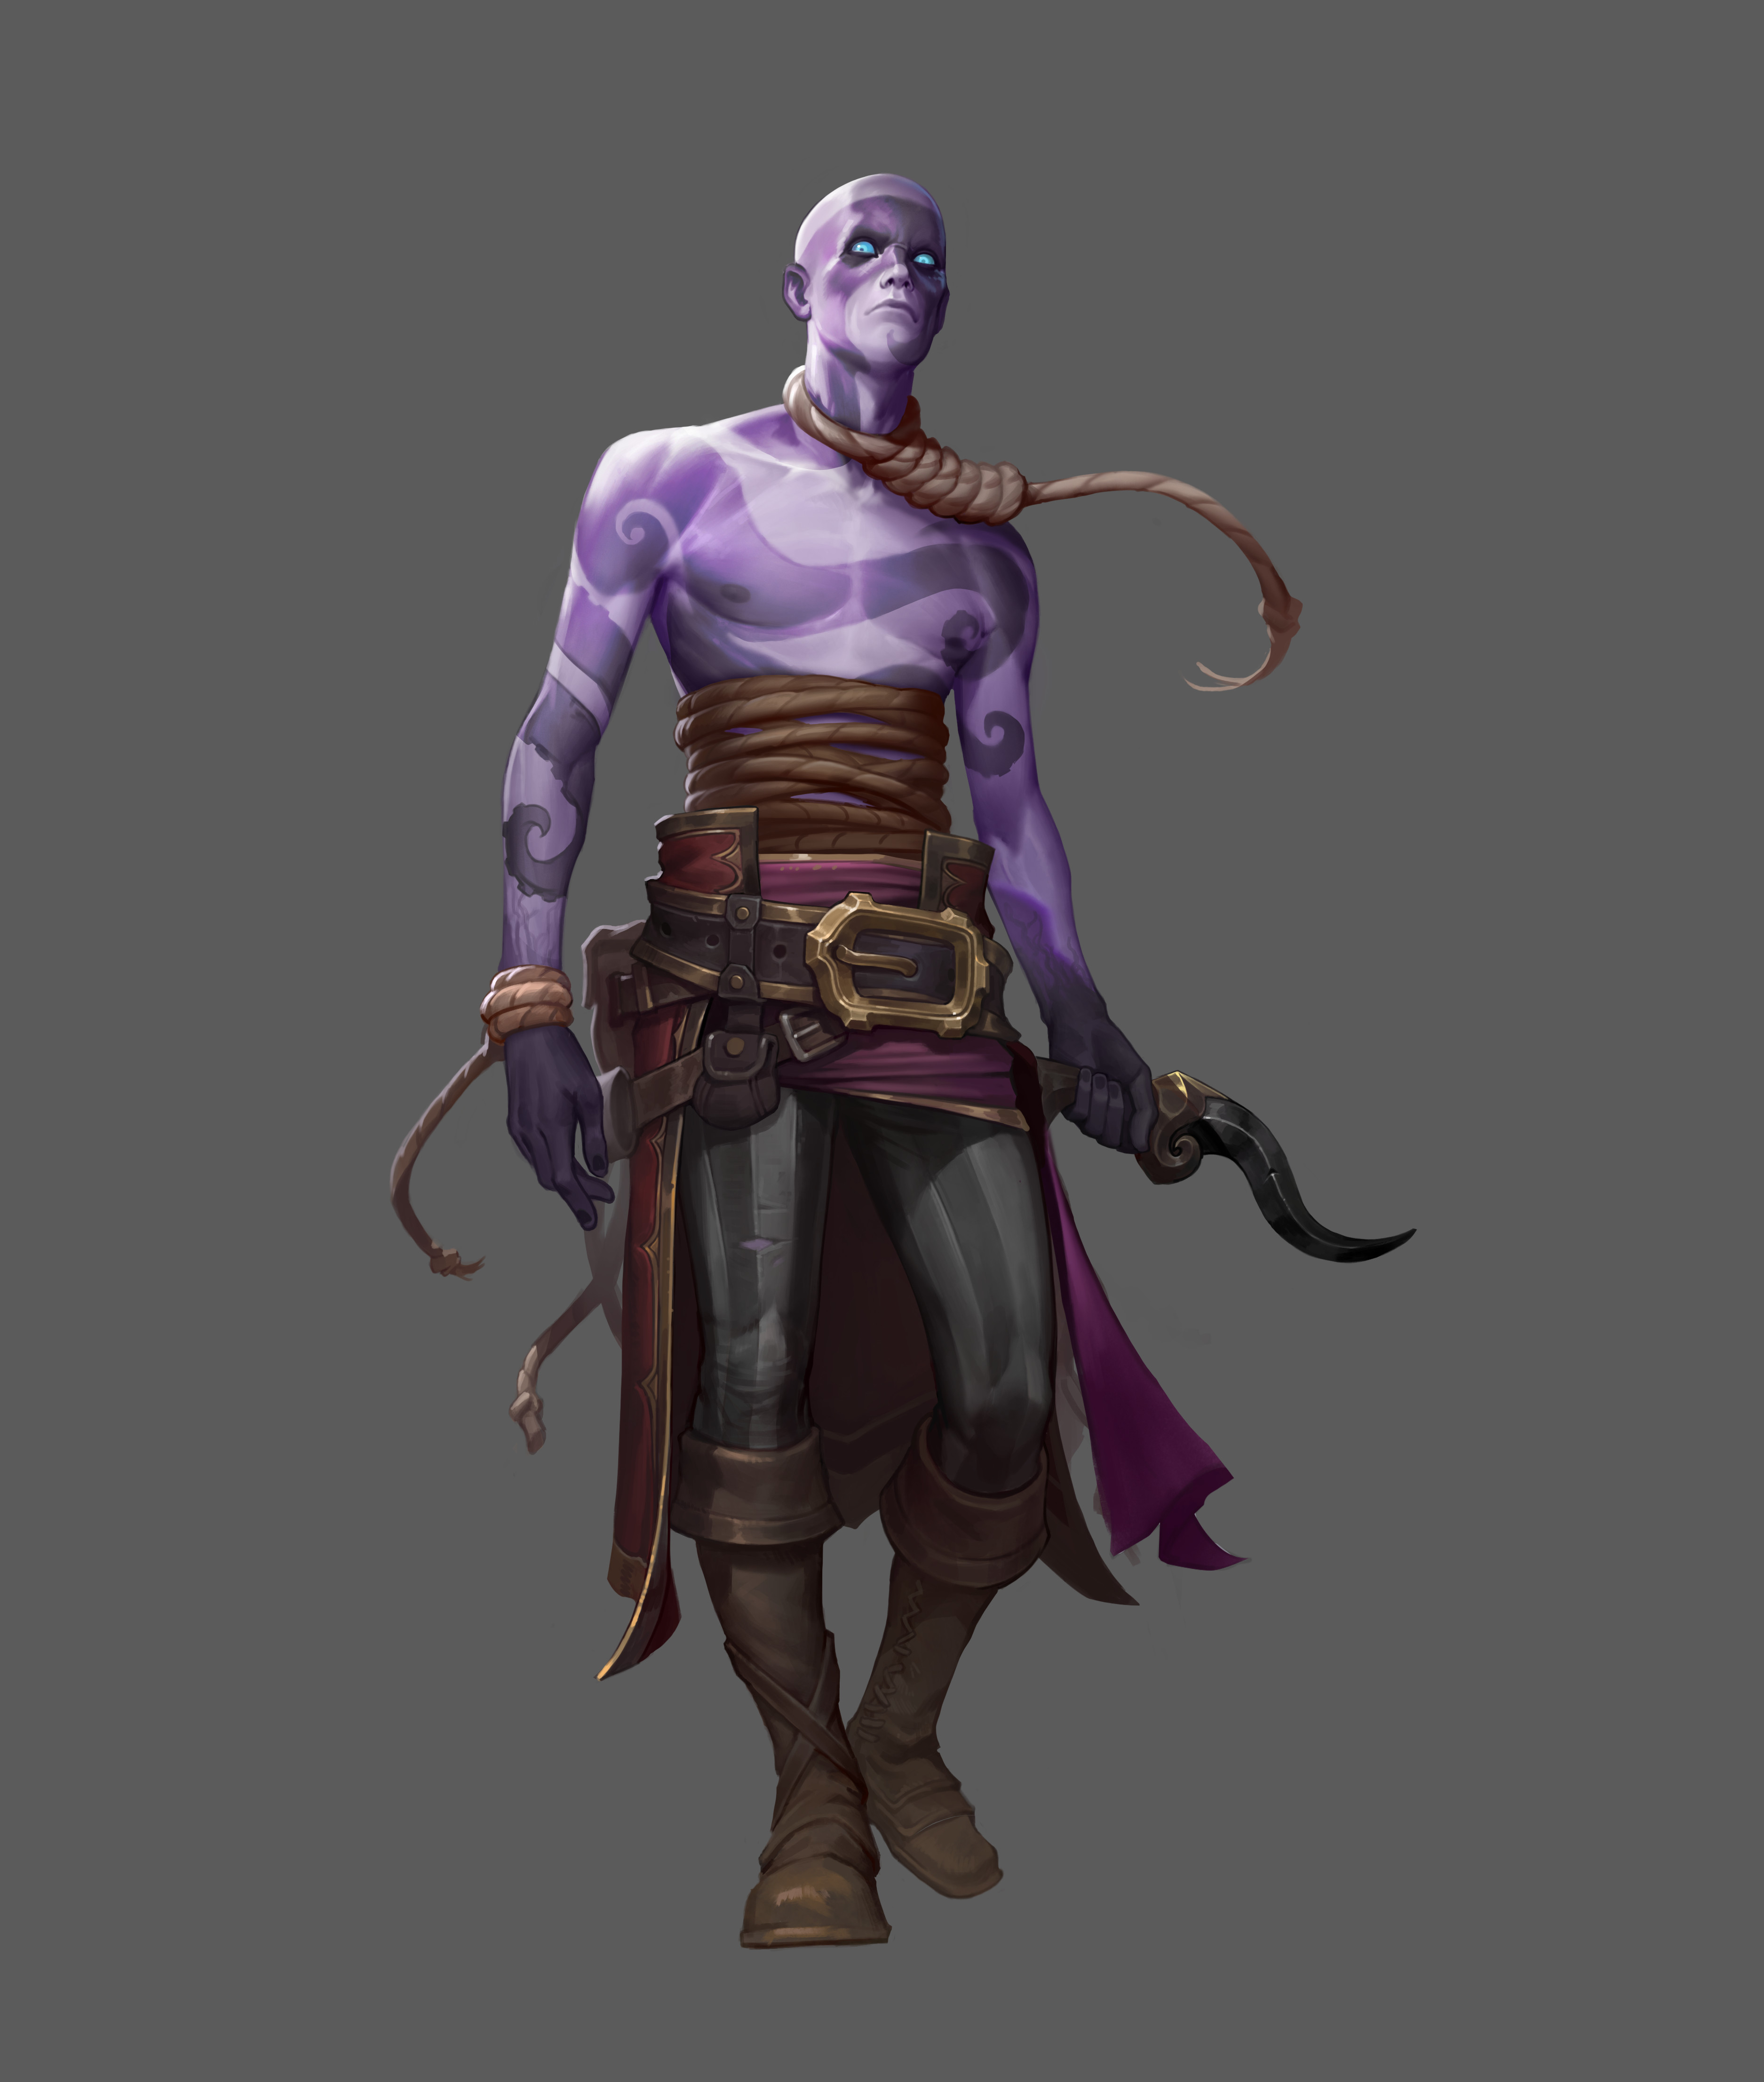 D&d style character